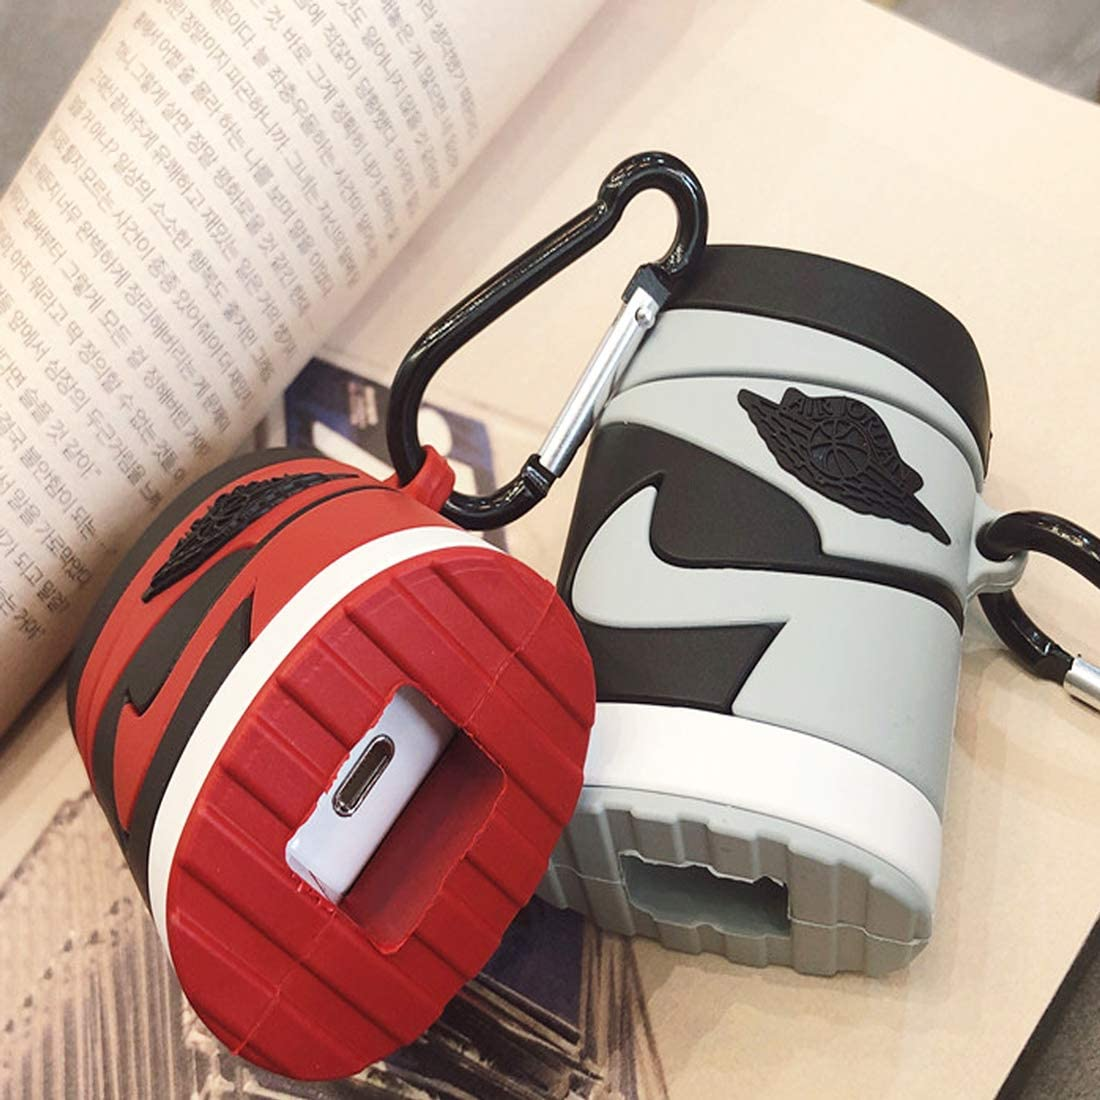 Red-j AirPods Case Protective Cover Soft Silicone Shockproof for Apple AirPods 2 /& 1 Fun Cool Design Skin for Kids Teens Boys Men